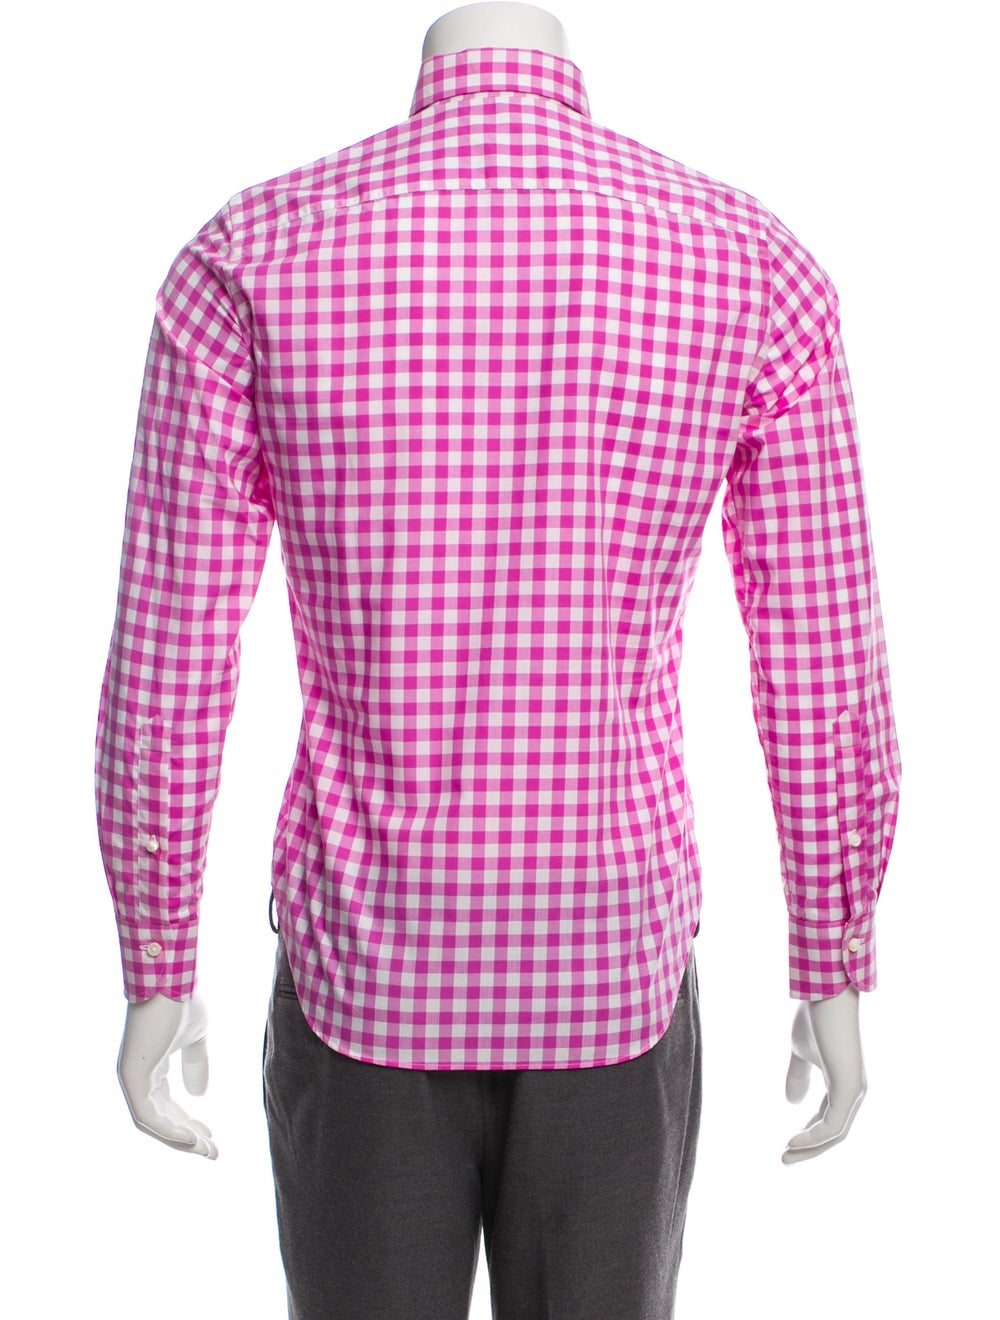 Daniel Cremieux Gingham Dress Shirt w/ Tags pink - image 3